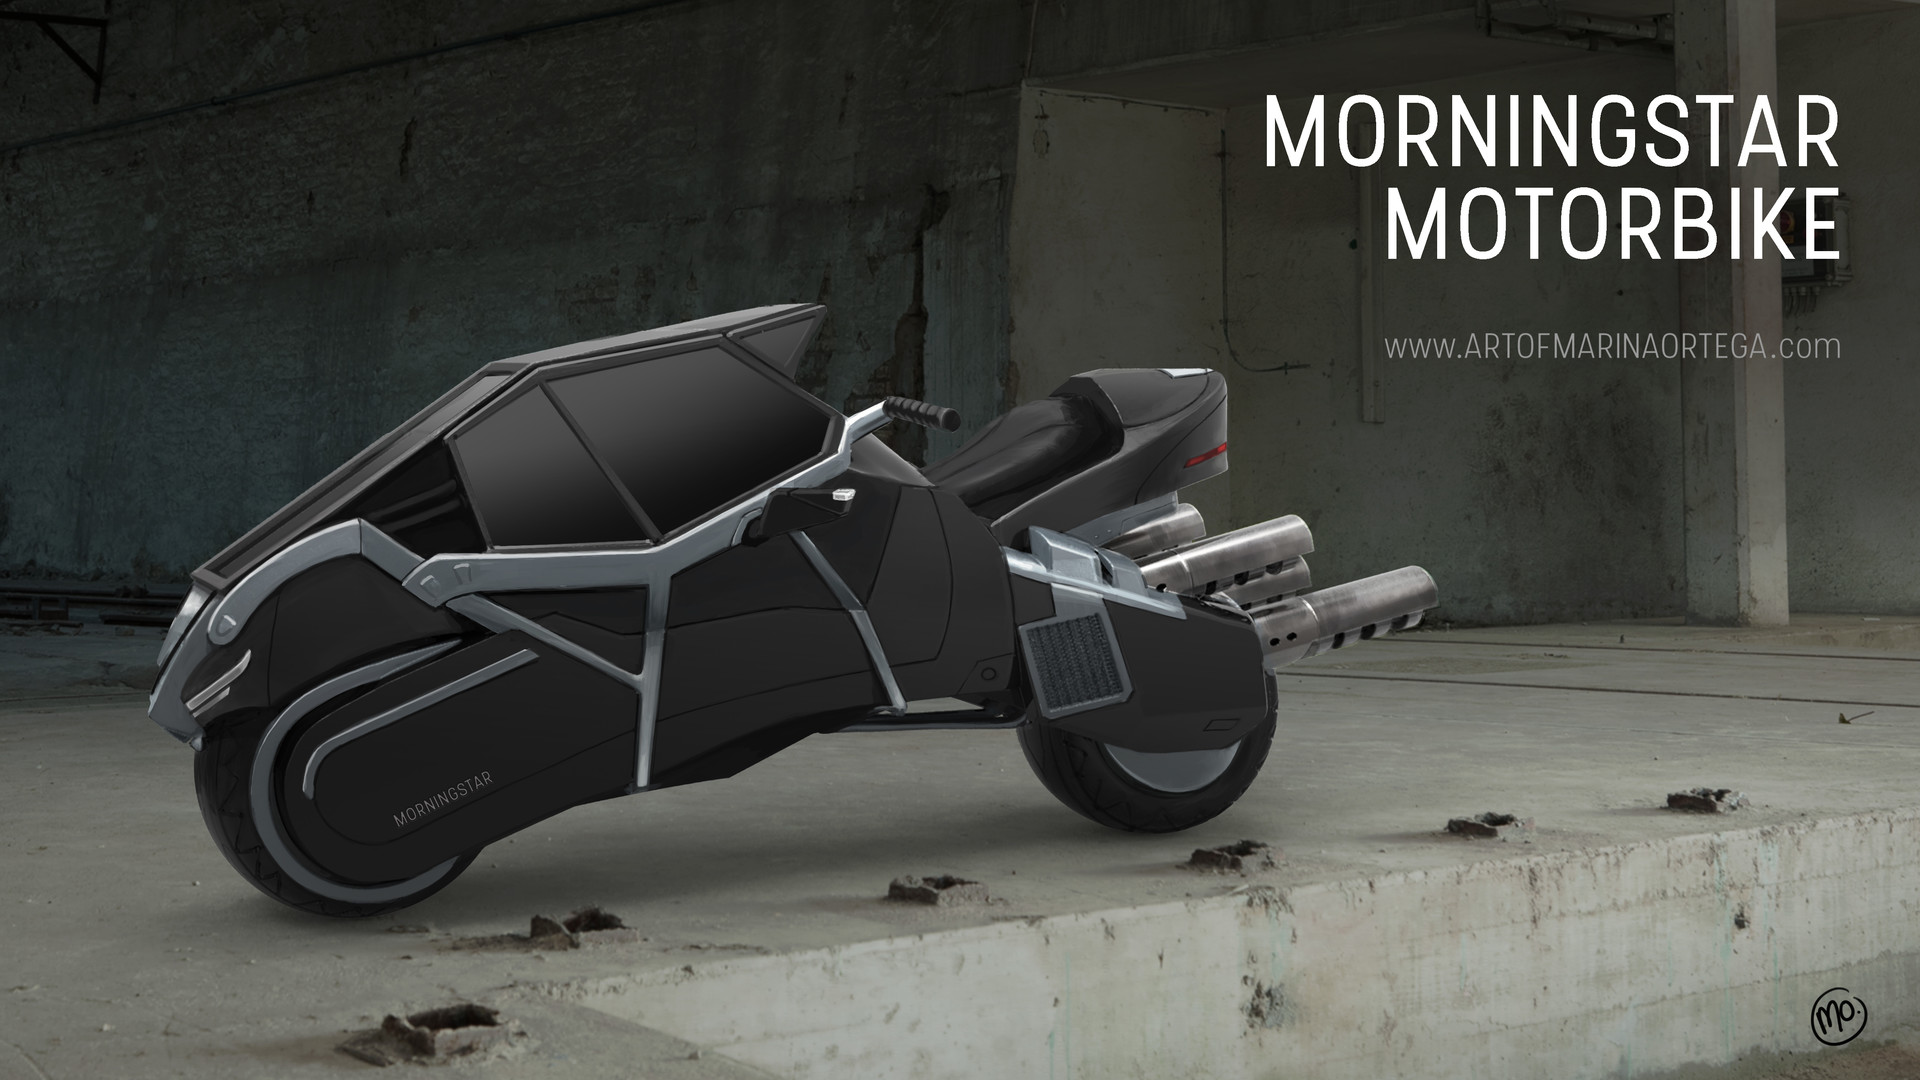 Morningstar Motorbike